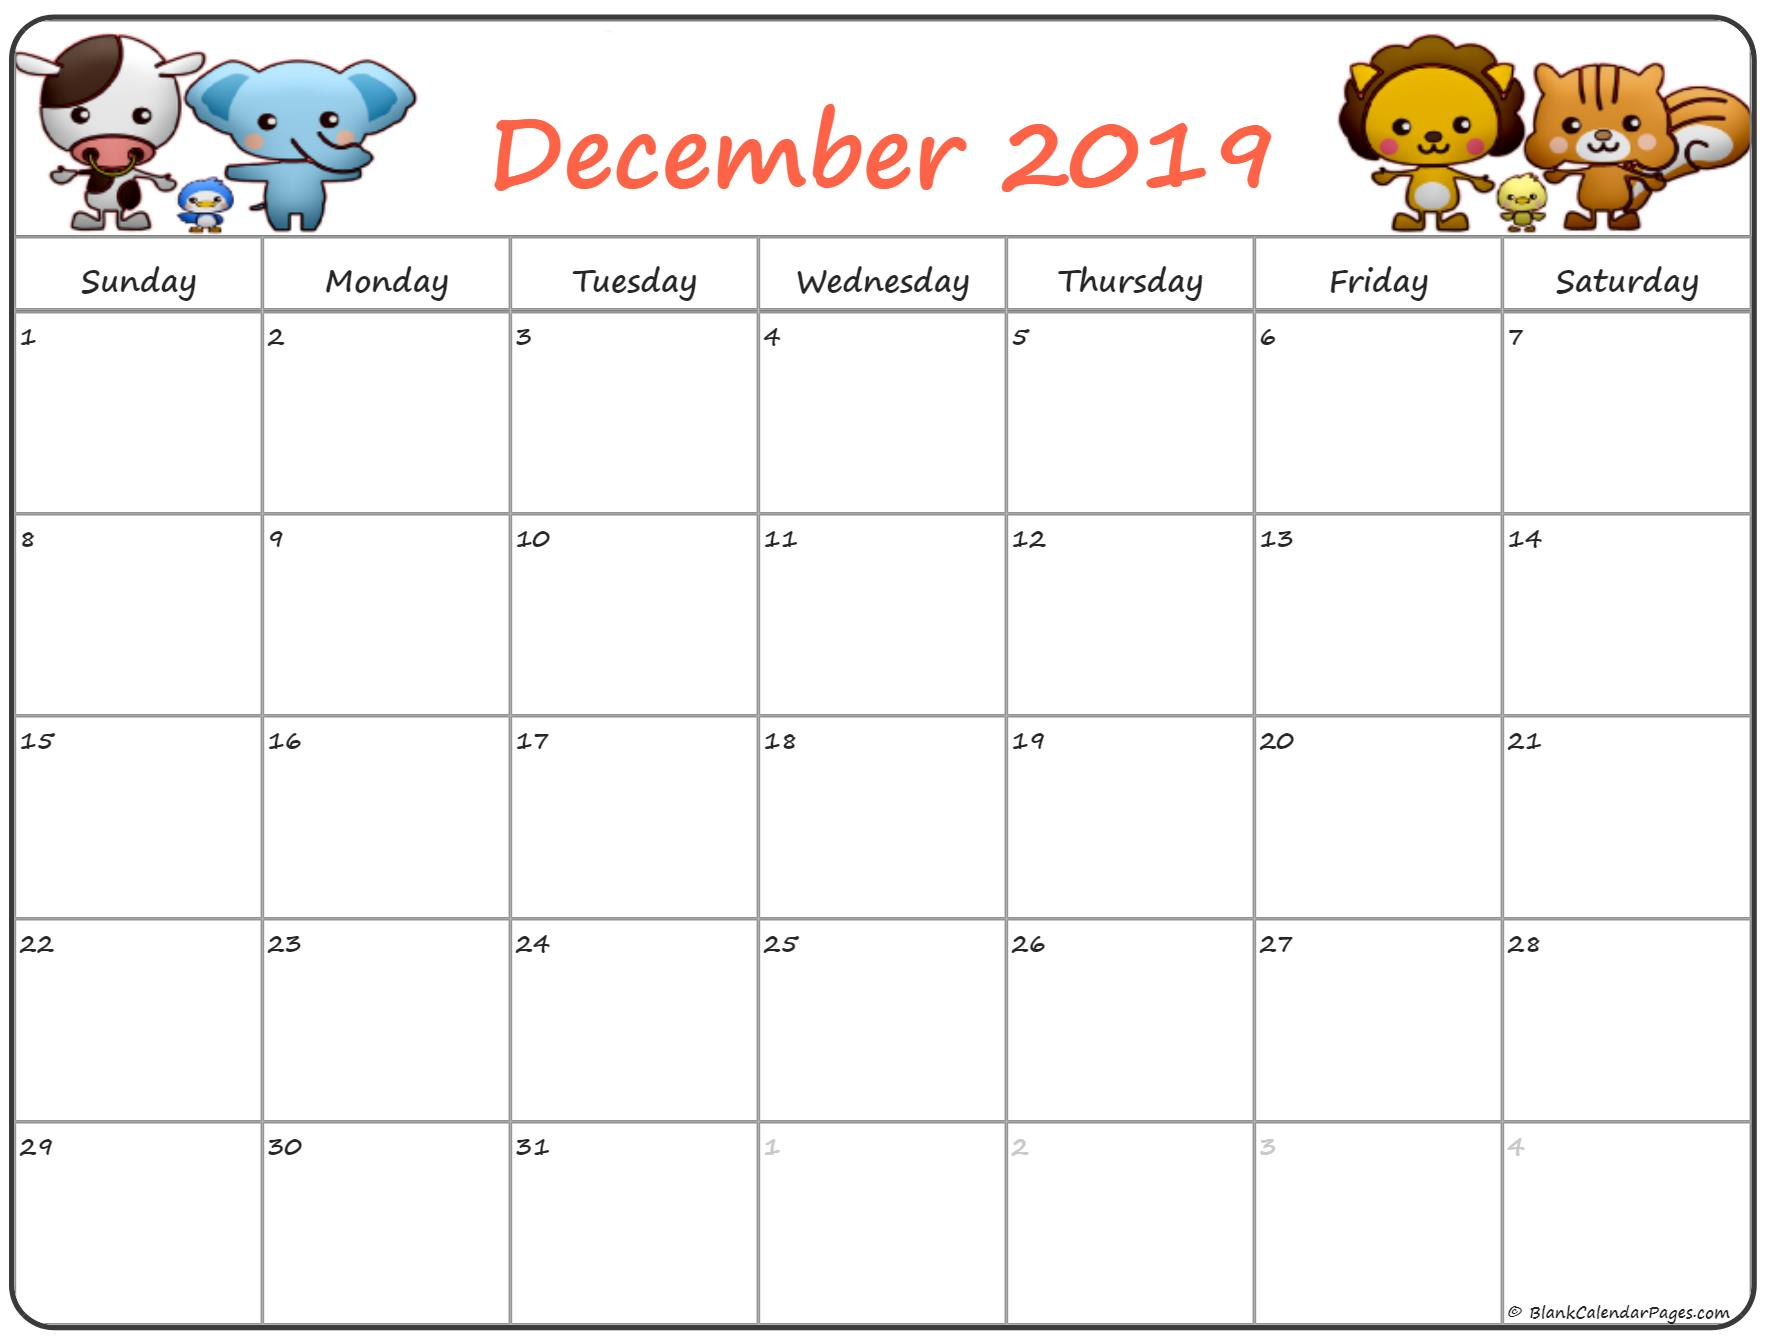 Cute December 2019 Calendar For Kids